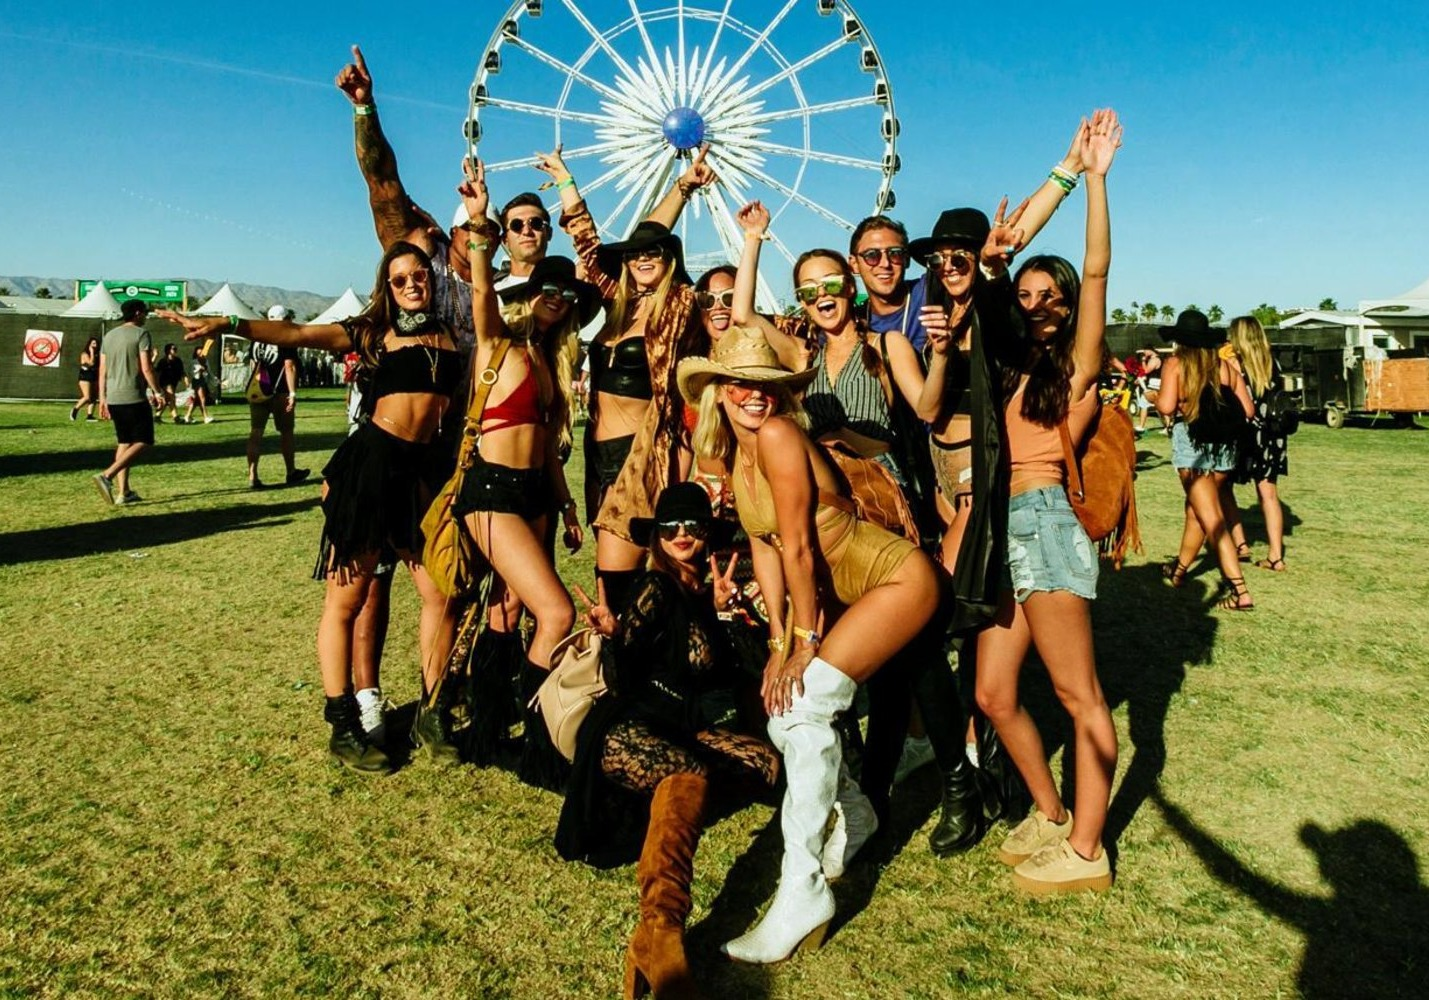 beautiful festival-goers posing at coachella festival